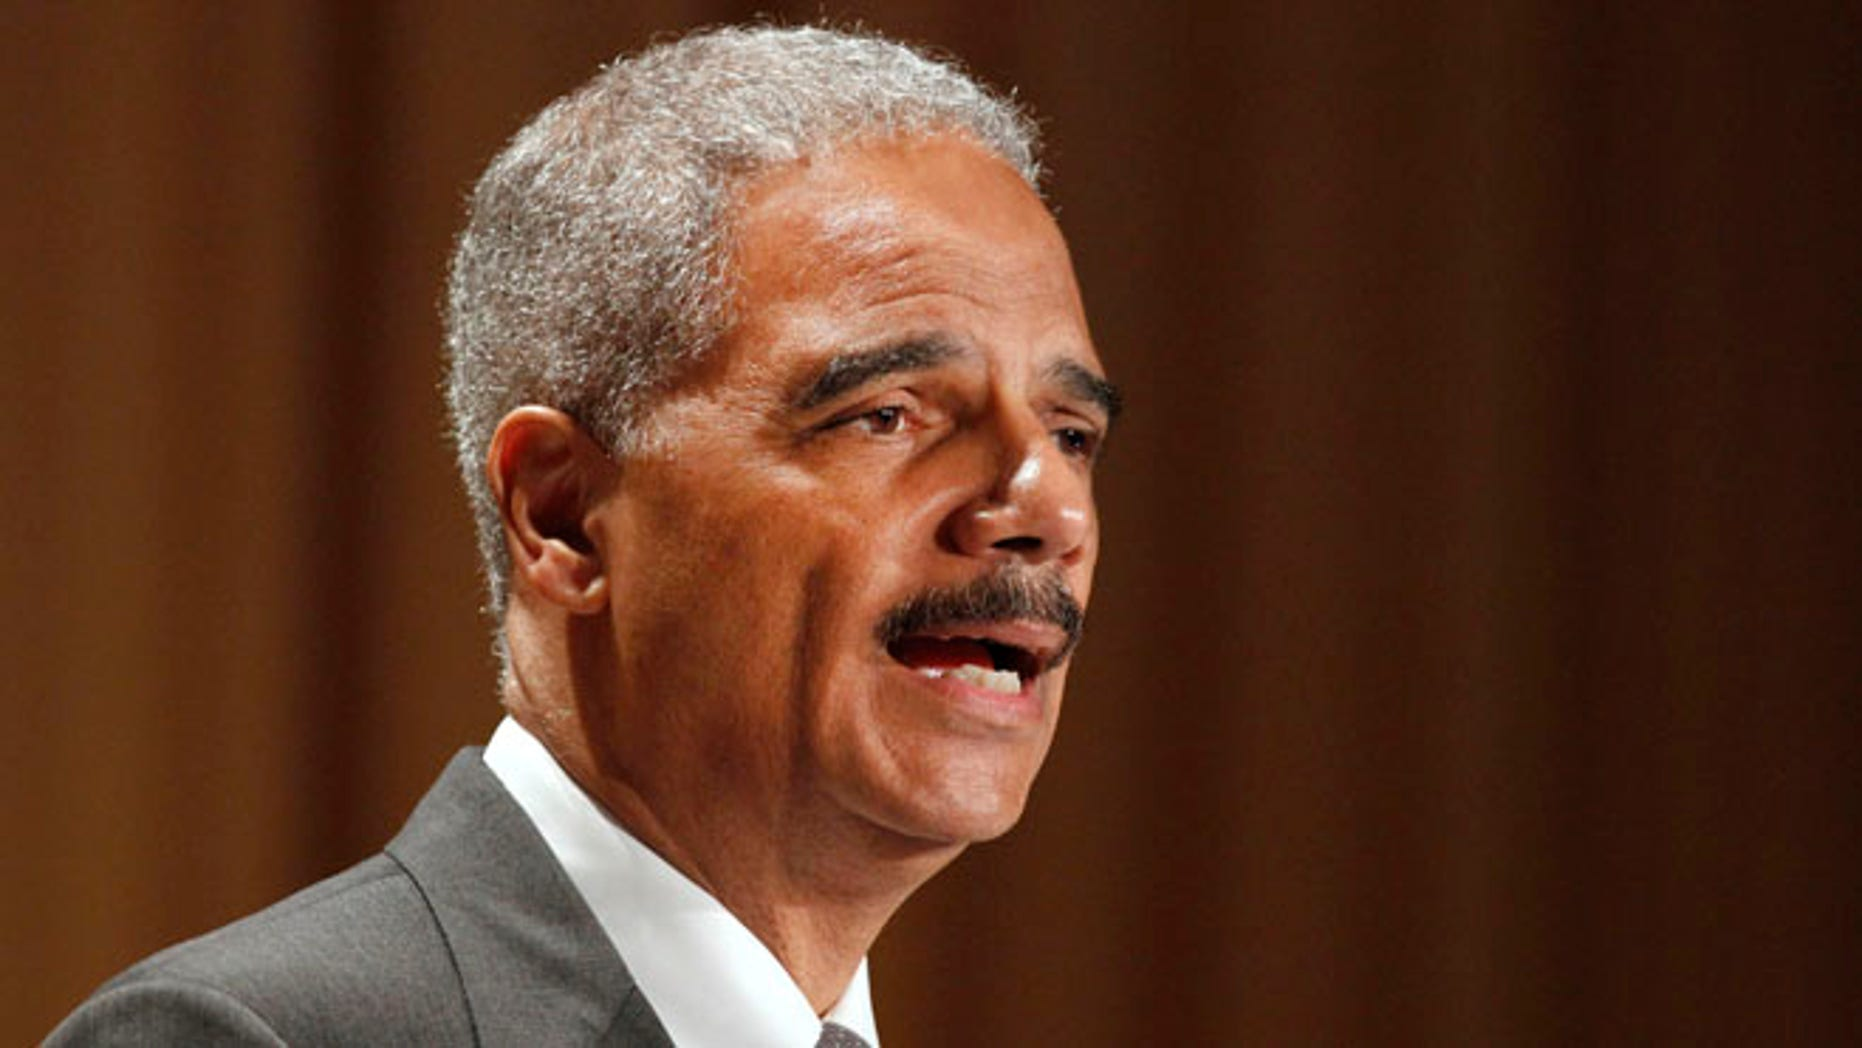 June 11, 2012: Attorney General Eric Holder speaks at the League of Women Voters National Convention in Washington.